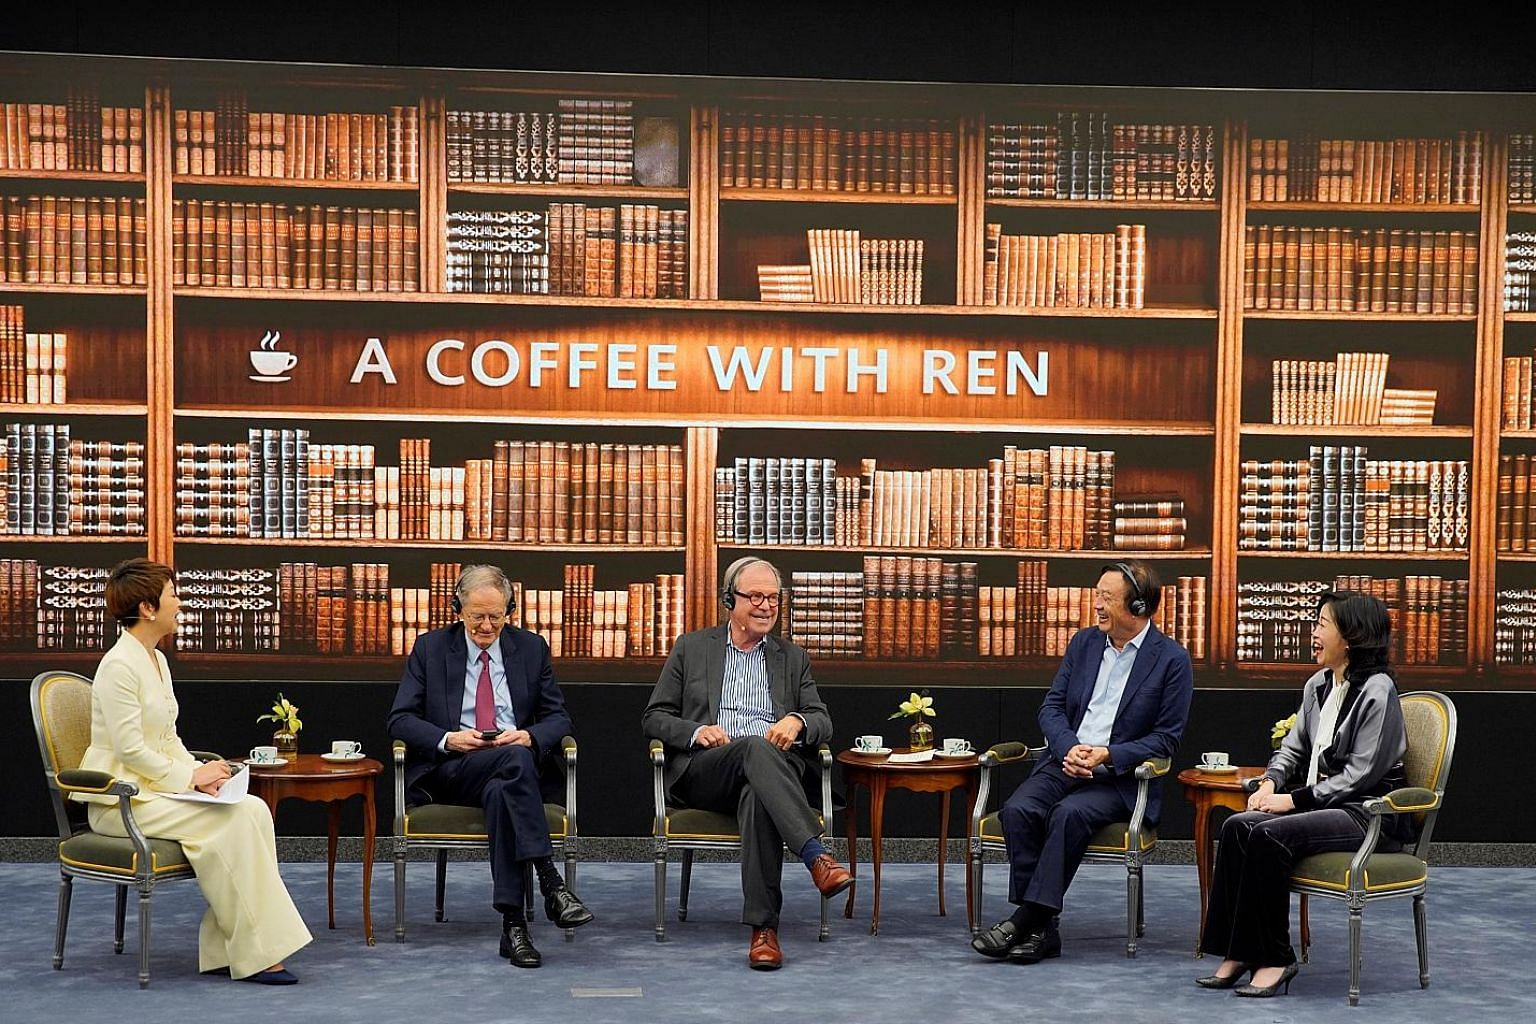 Huawei founder Ren Zhengfei (second from right) at a panel discussion with American technological expert George Gilder (second from left) and Massachusetts Institute of Technology Media Lab founder Nicholas Negroponte at the company's headquarters in